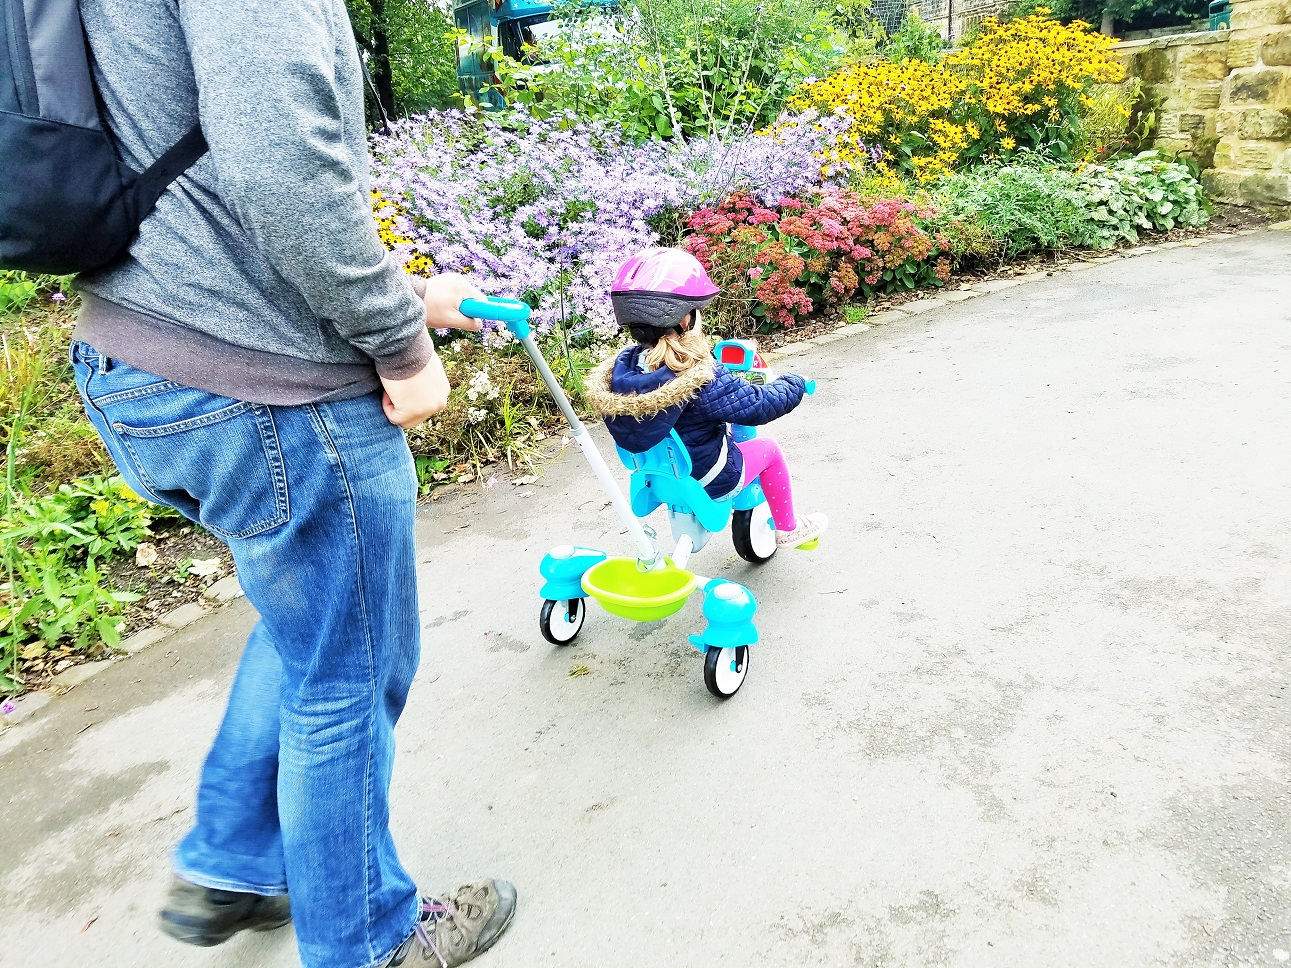 vtech trike next to some flowers